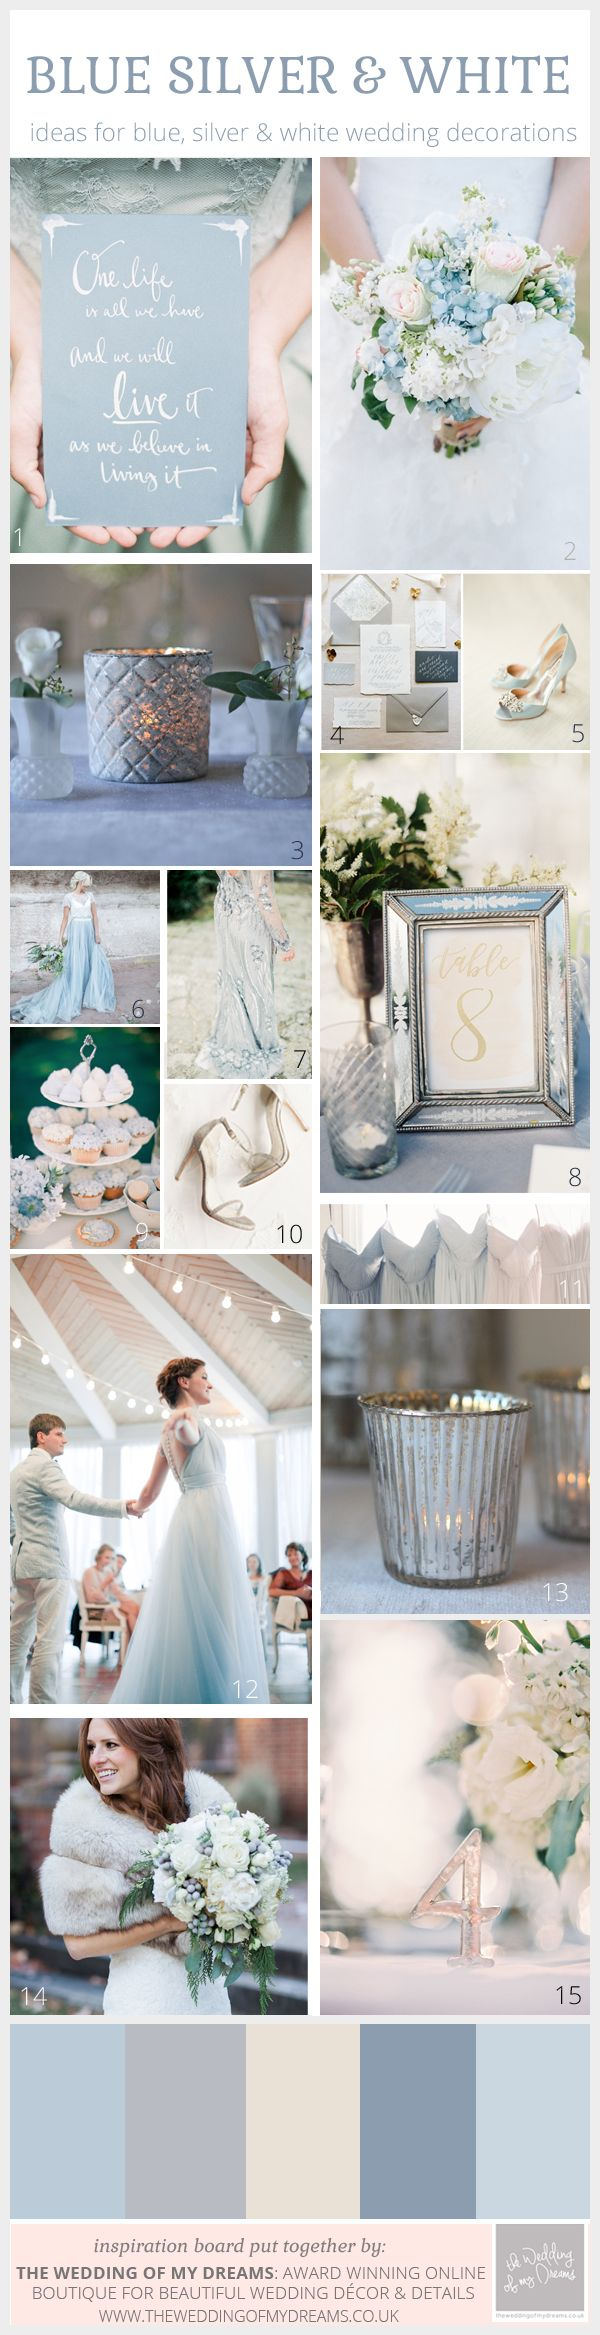 Enchanting Winter Wedding Colour Scheme: White, Blue and Silver ...